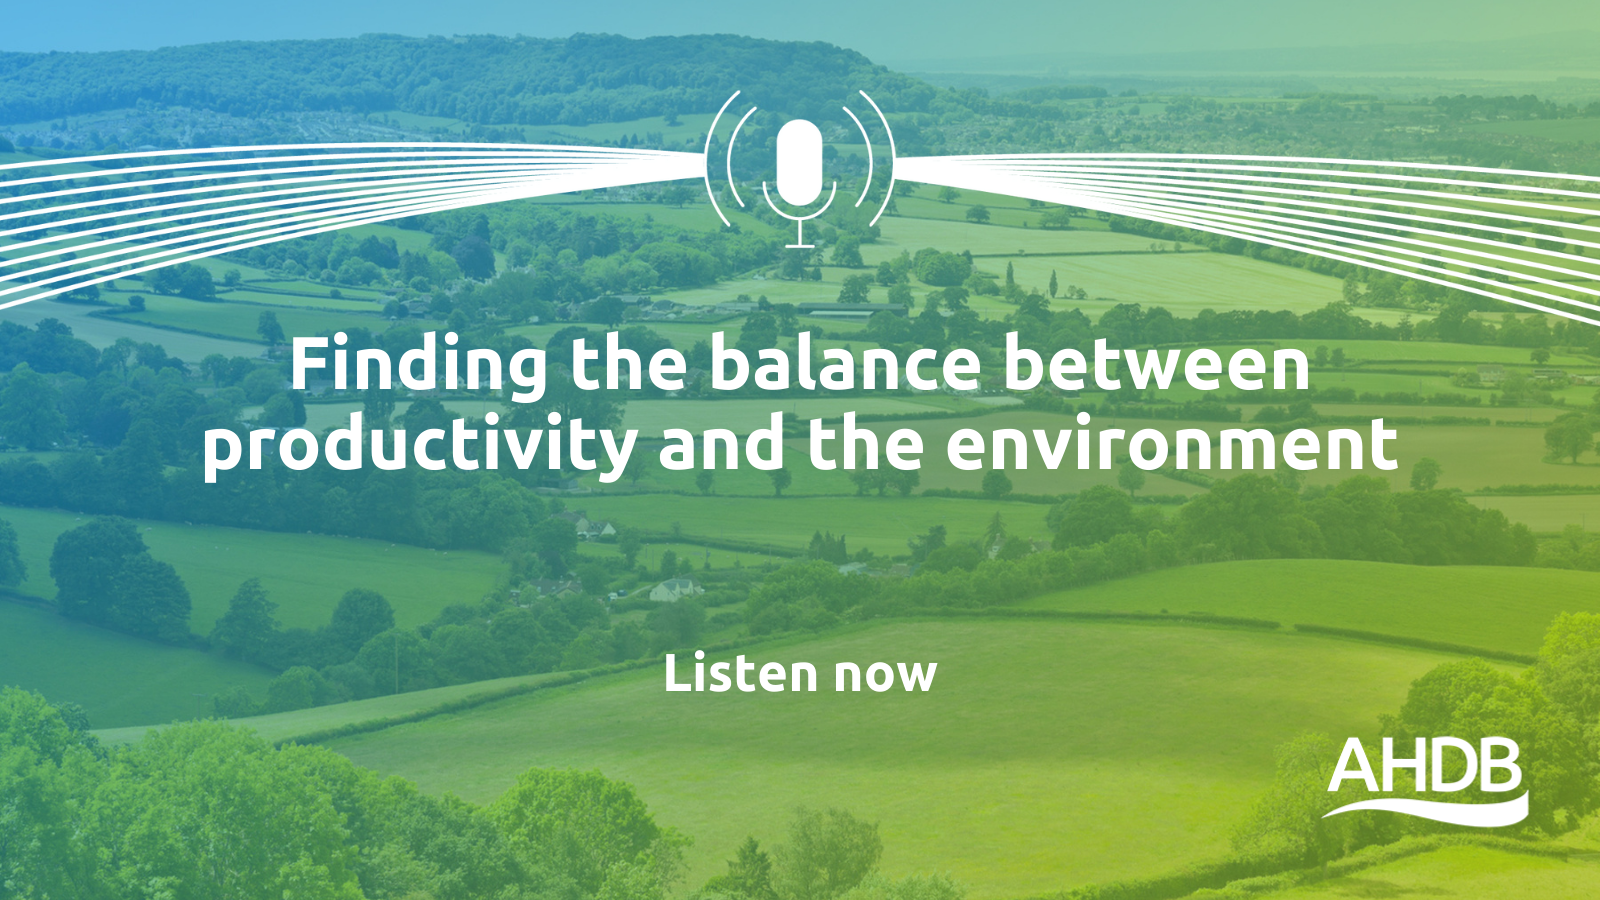 In this podcast Tom Vickers talks about finding a balance between production and the environment.